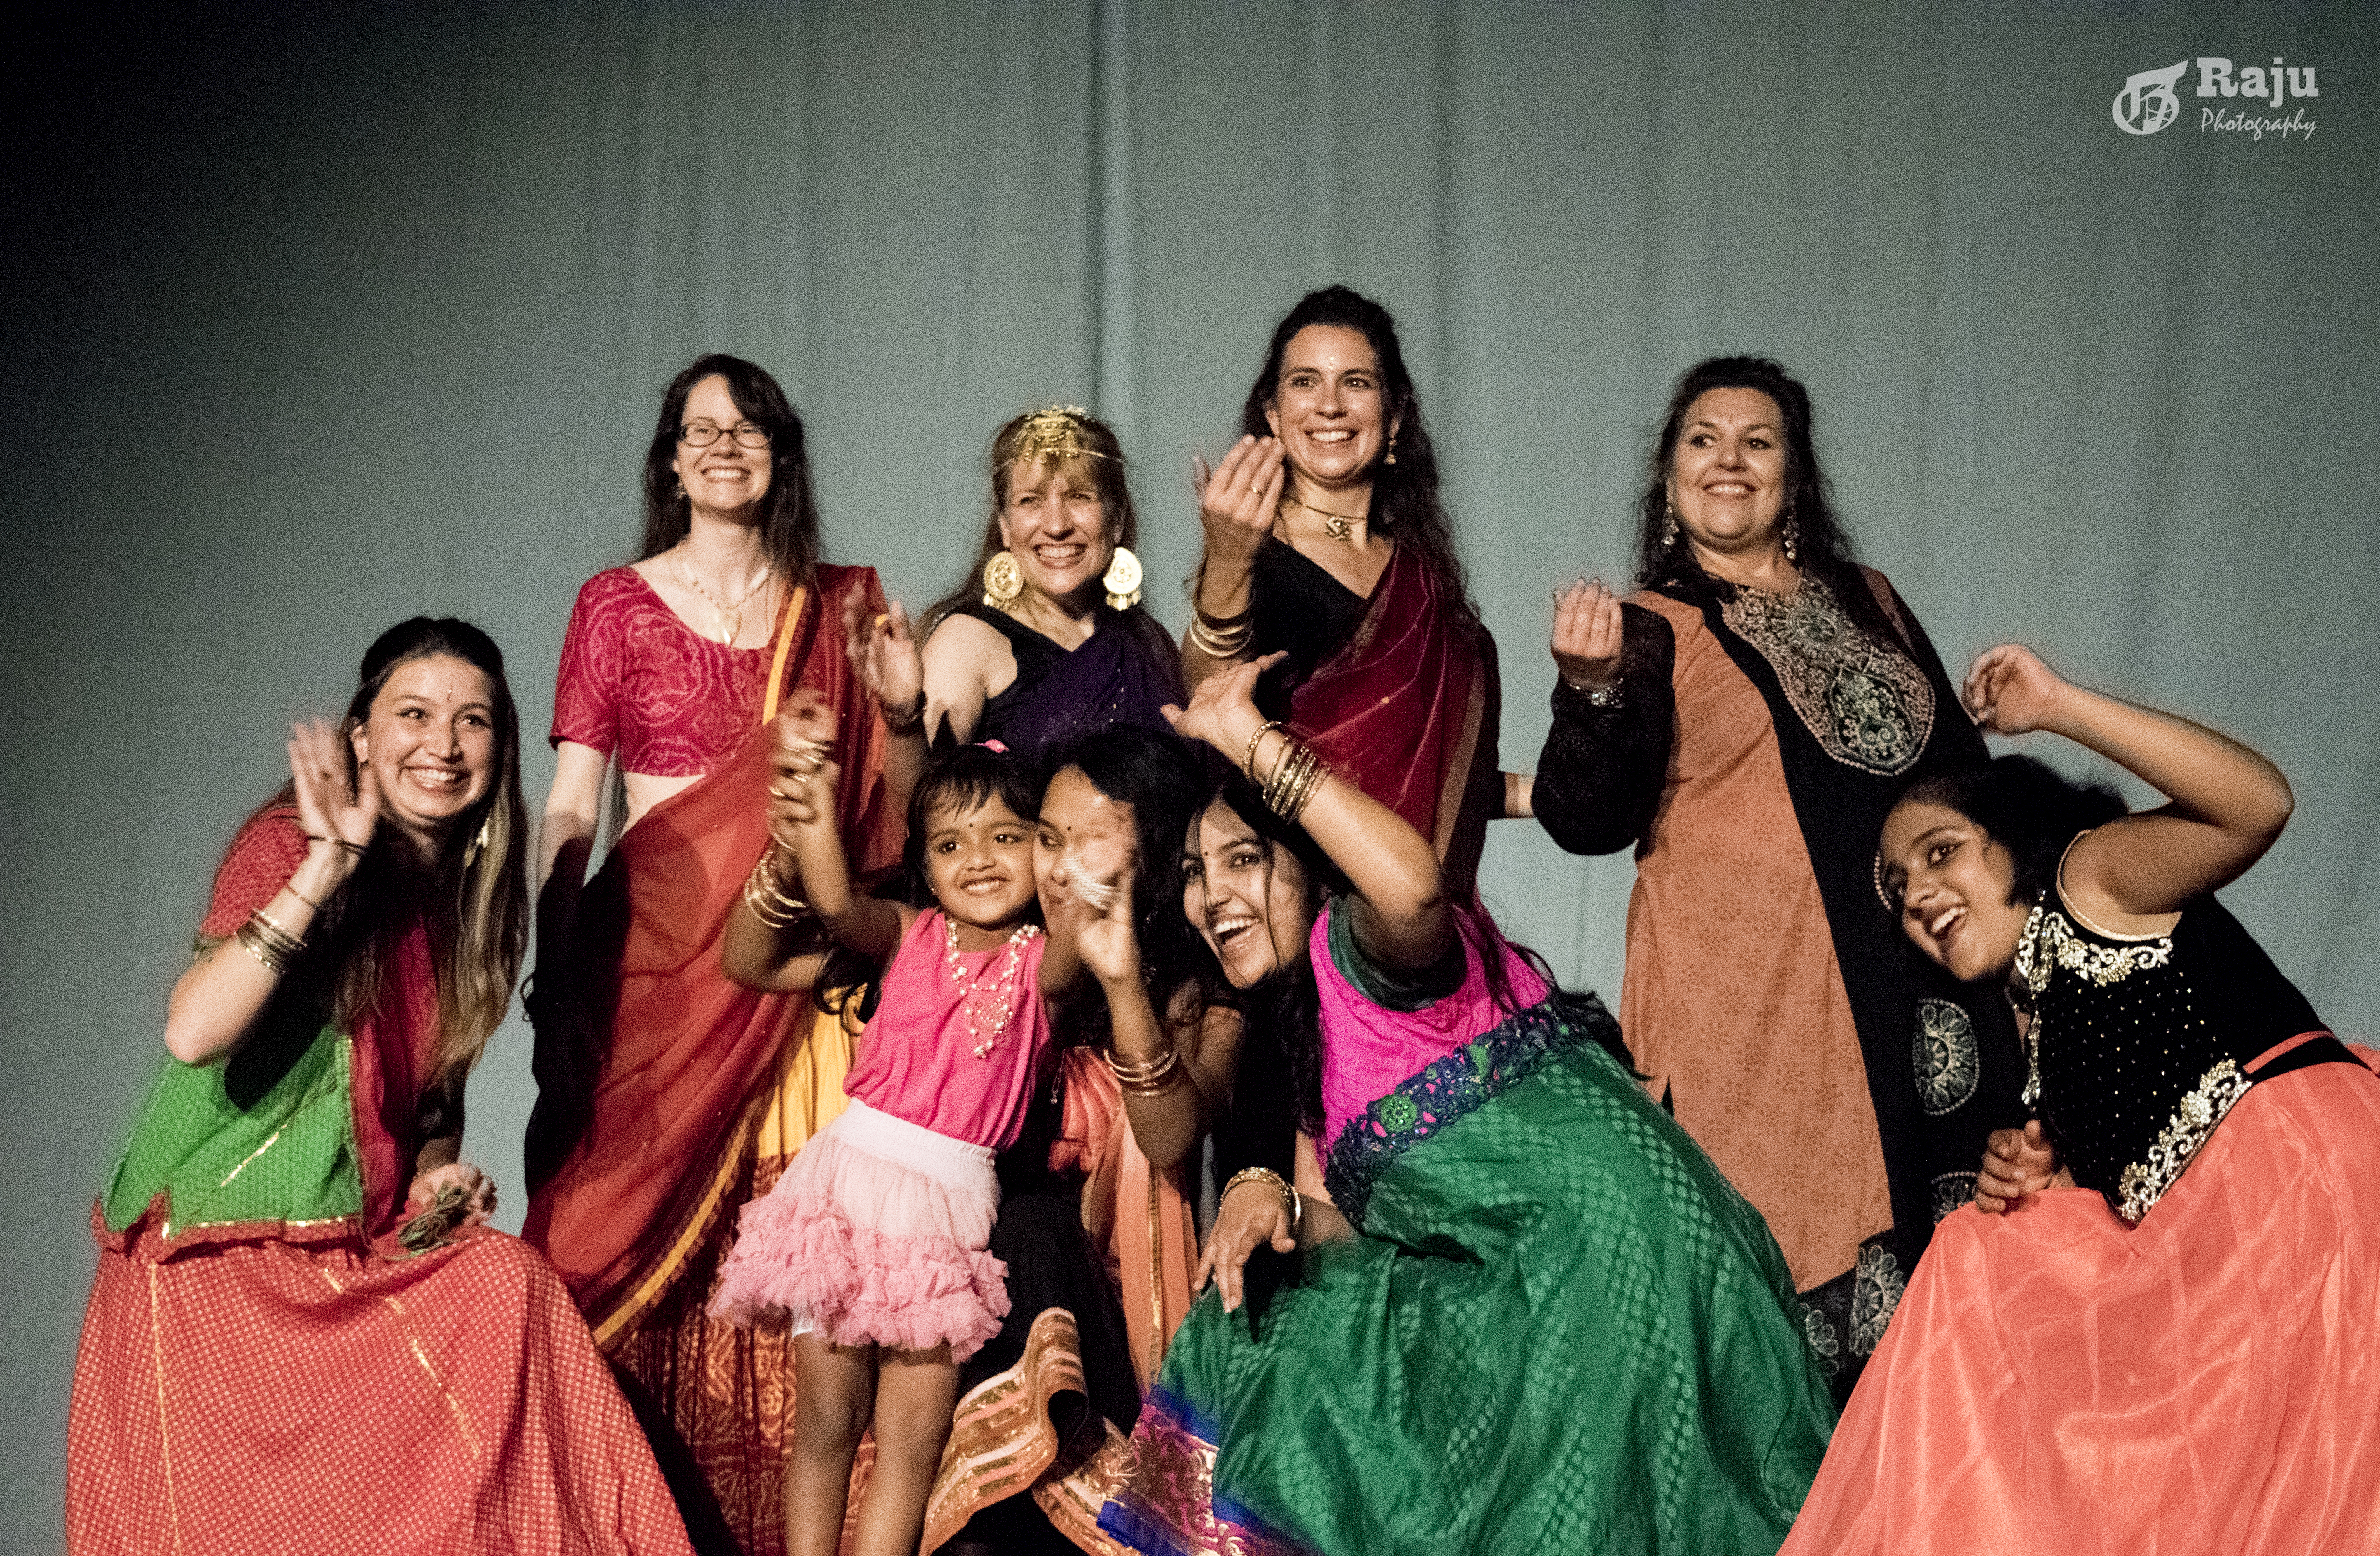 Festival of India Gives Students New Perspective